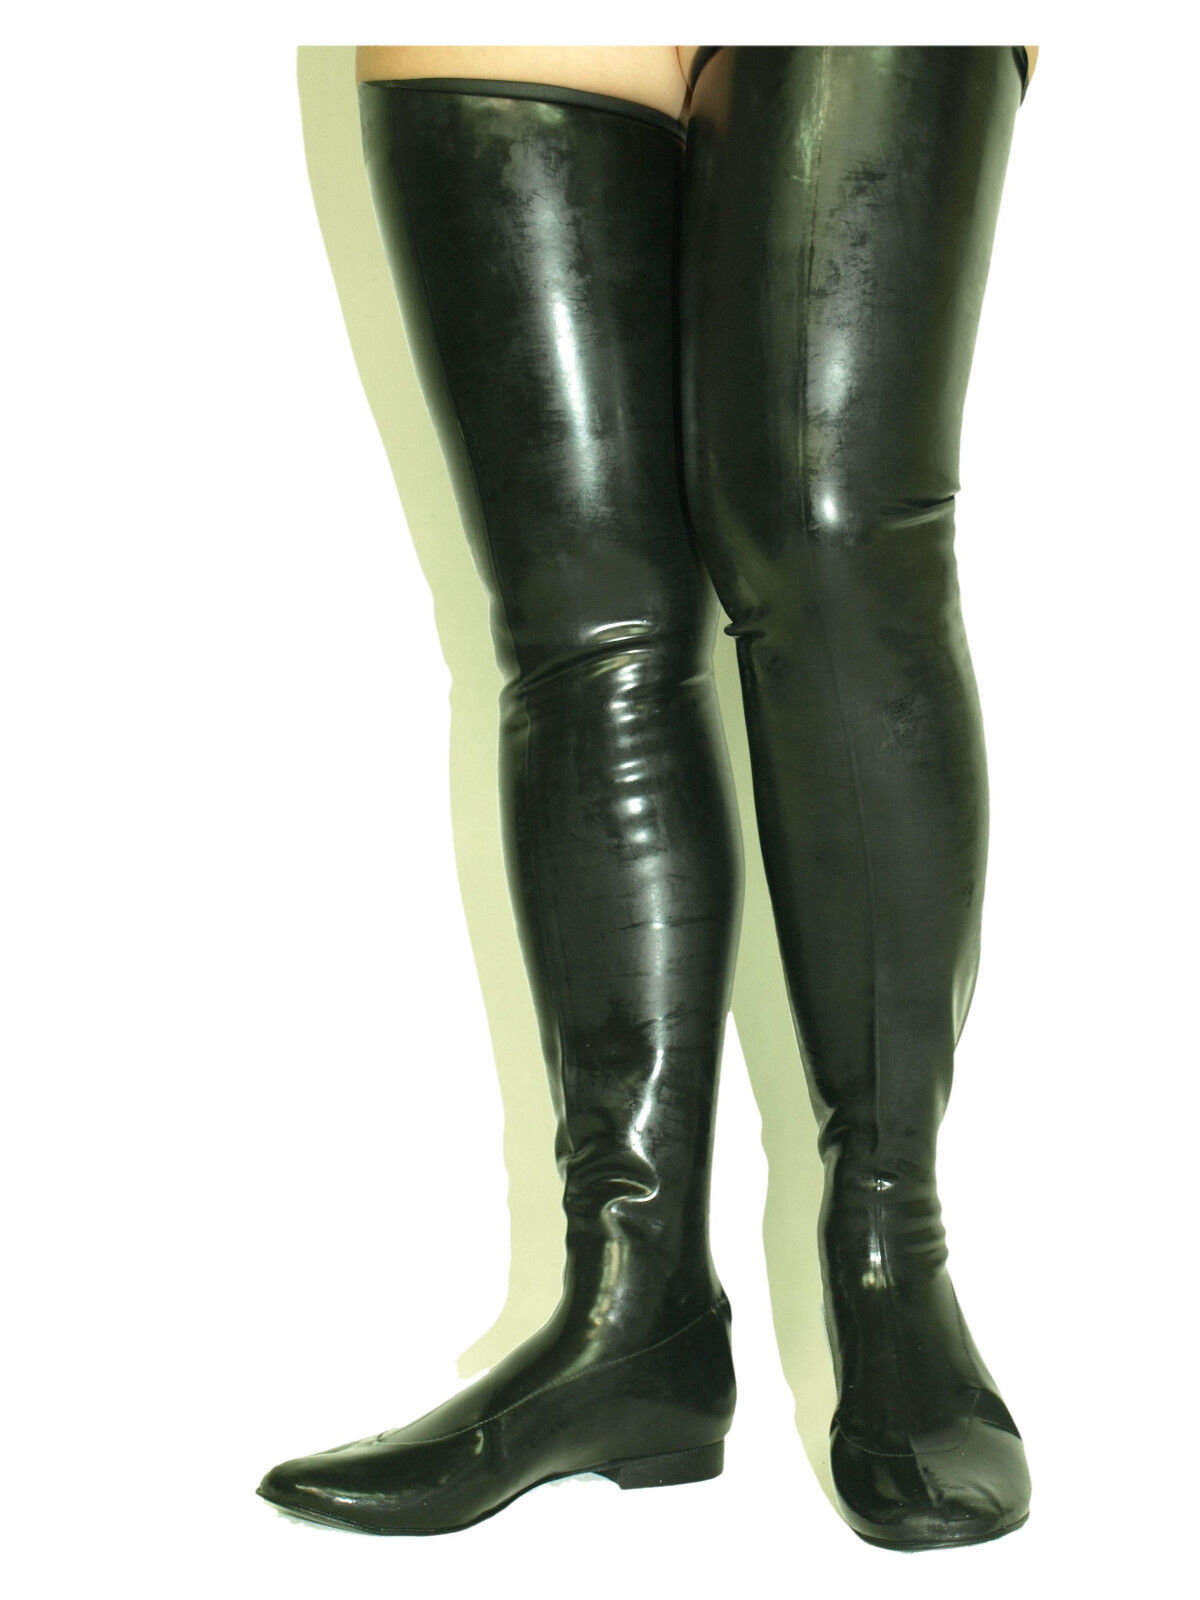 PROMOTIONS LATEX RUBBER Stiefel Größe 5-16 HEELS-0 - - - PRODUCE POLAND 9141a2